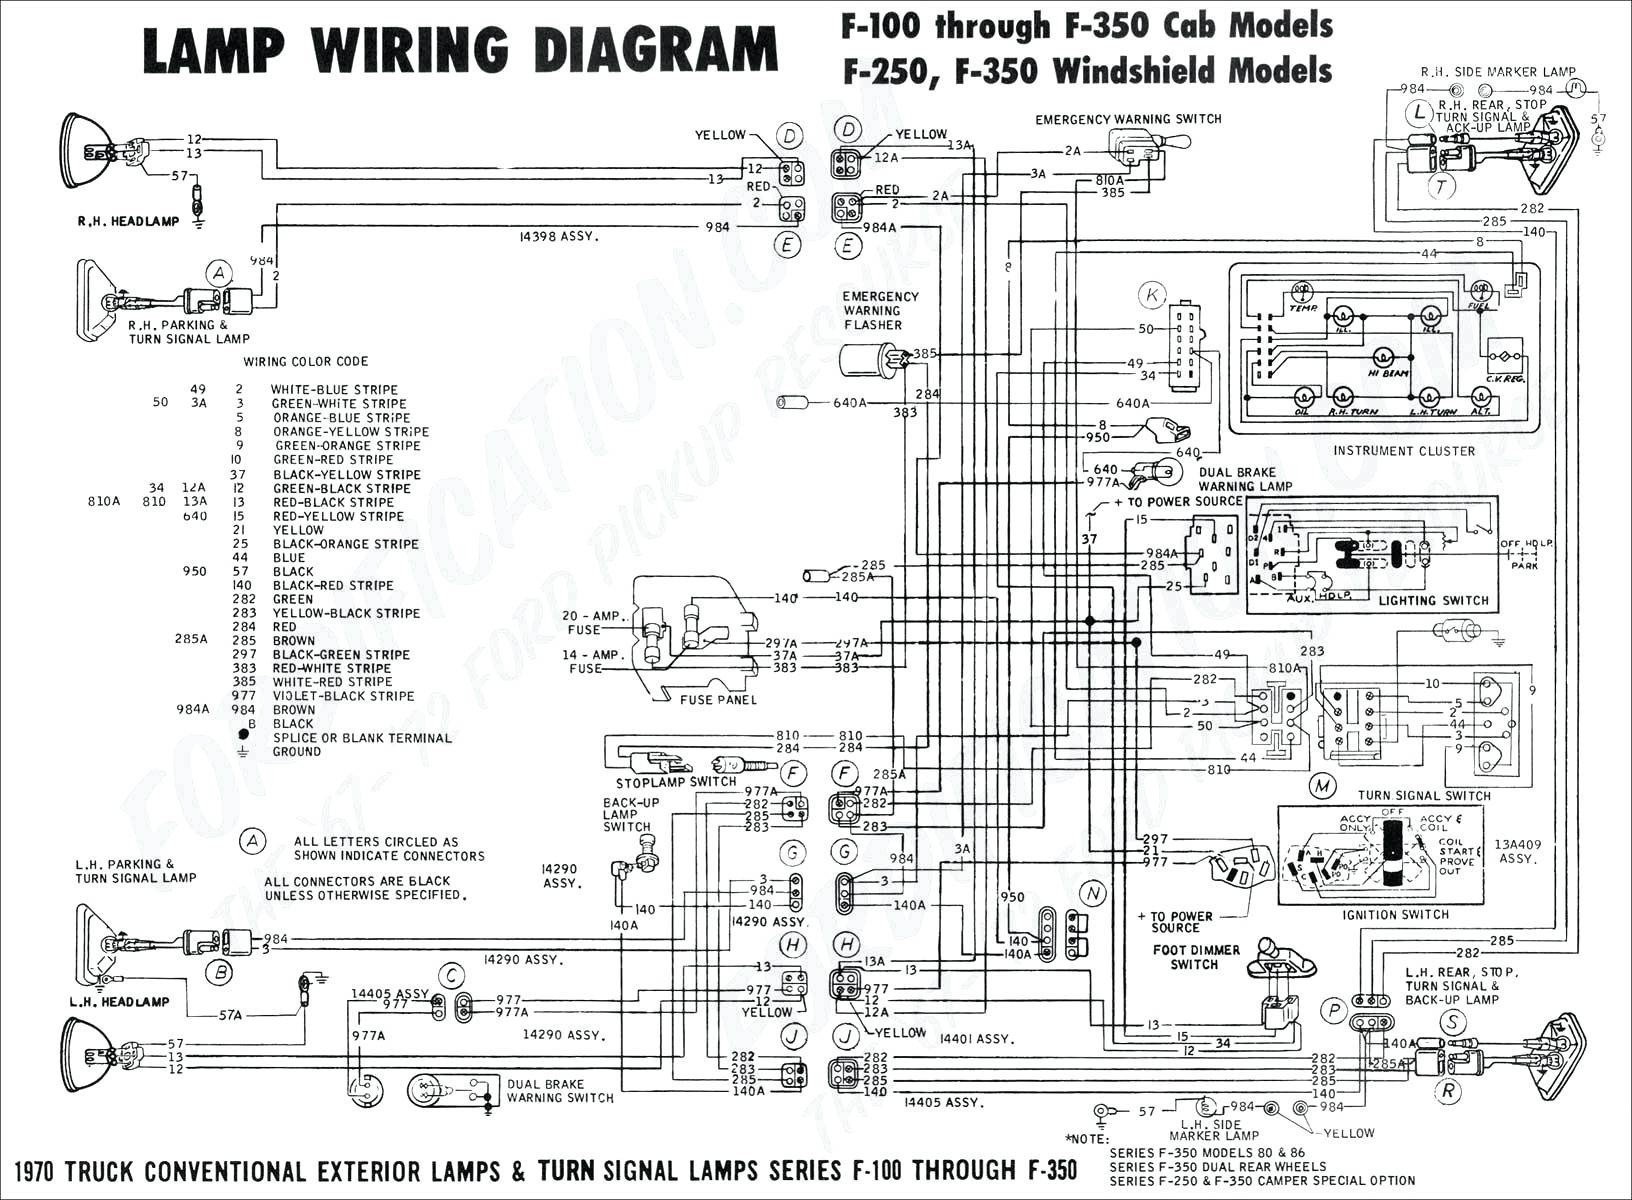 1993 ford Explorer Wiring Diagram 2000 ford F 150 Fuel Pump Wiring Trusted Schematics Diagram Of 1993 ford Explorer Wiring Diagram